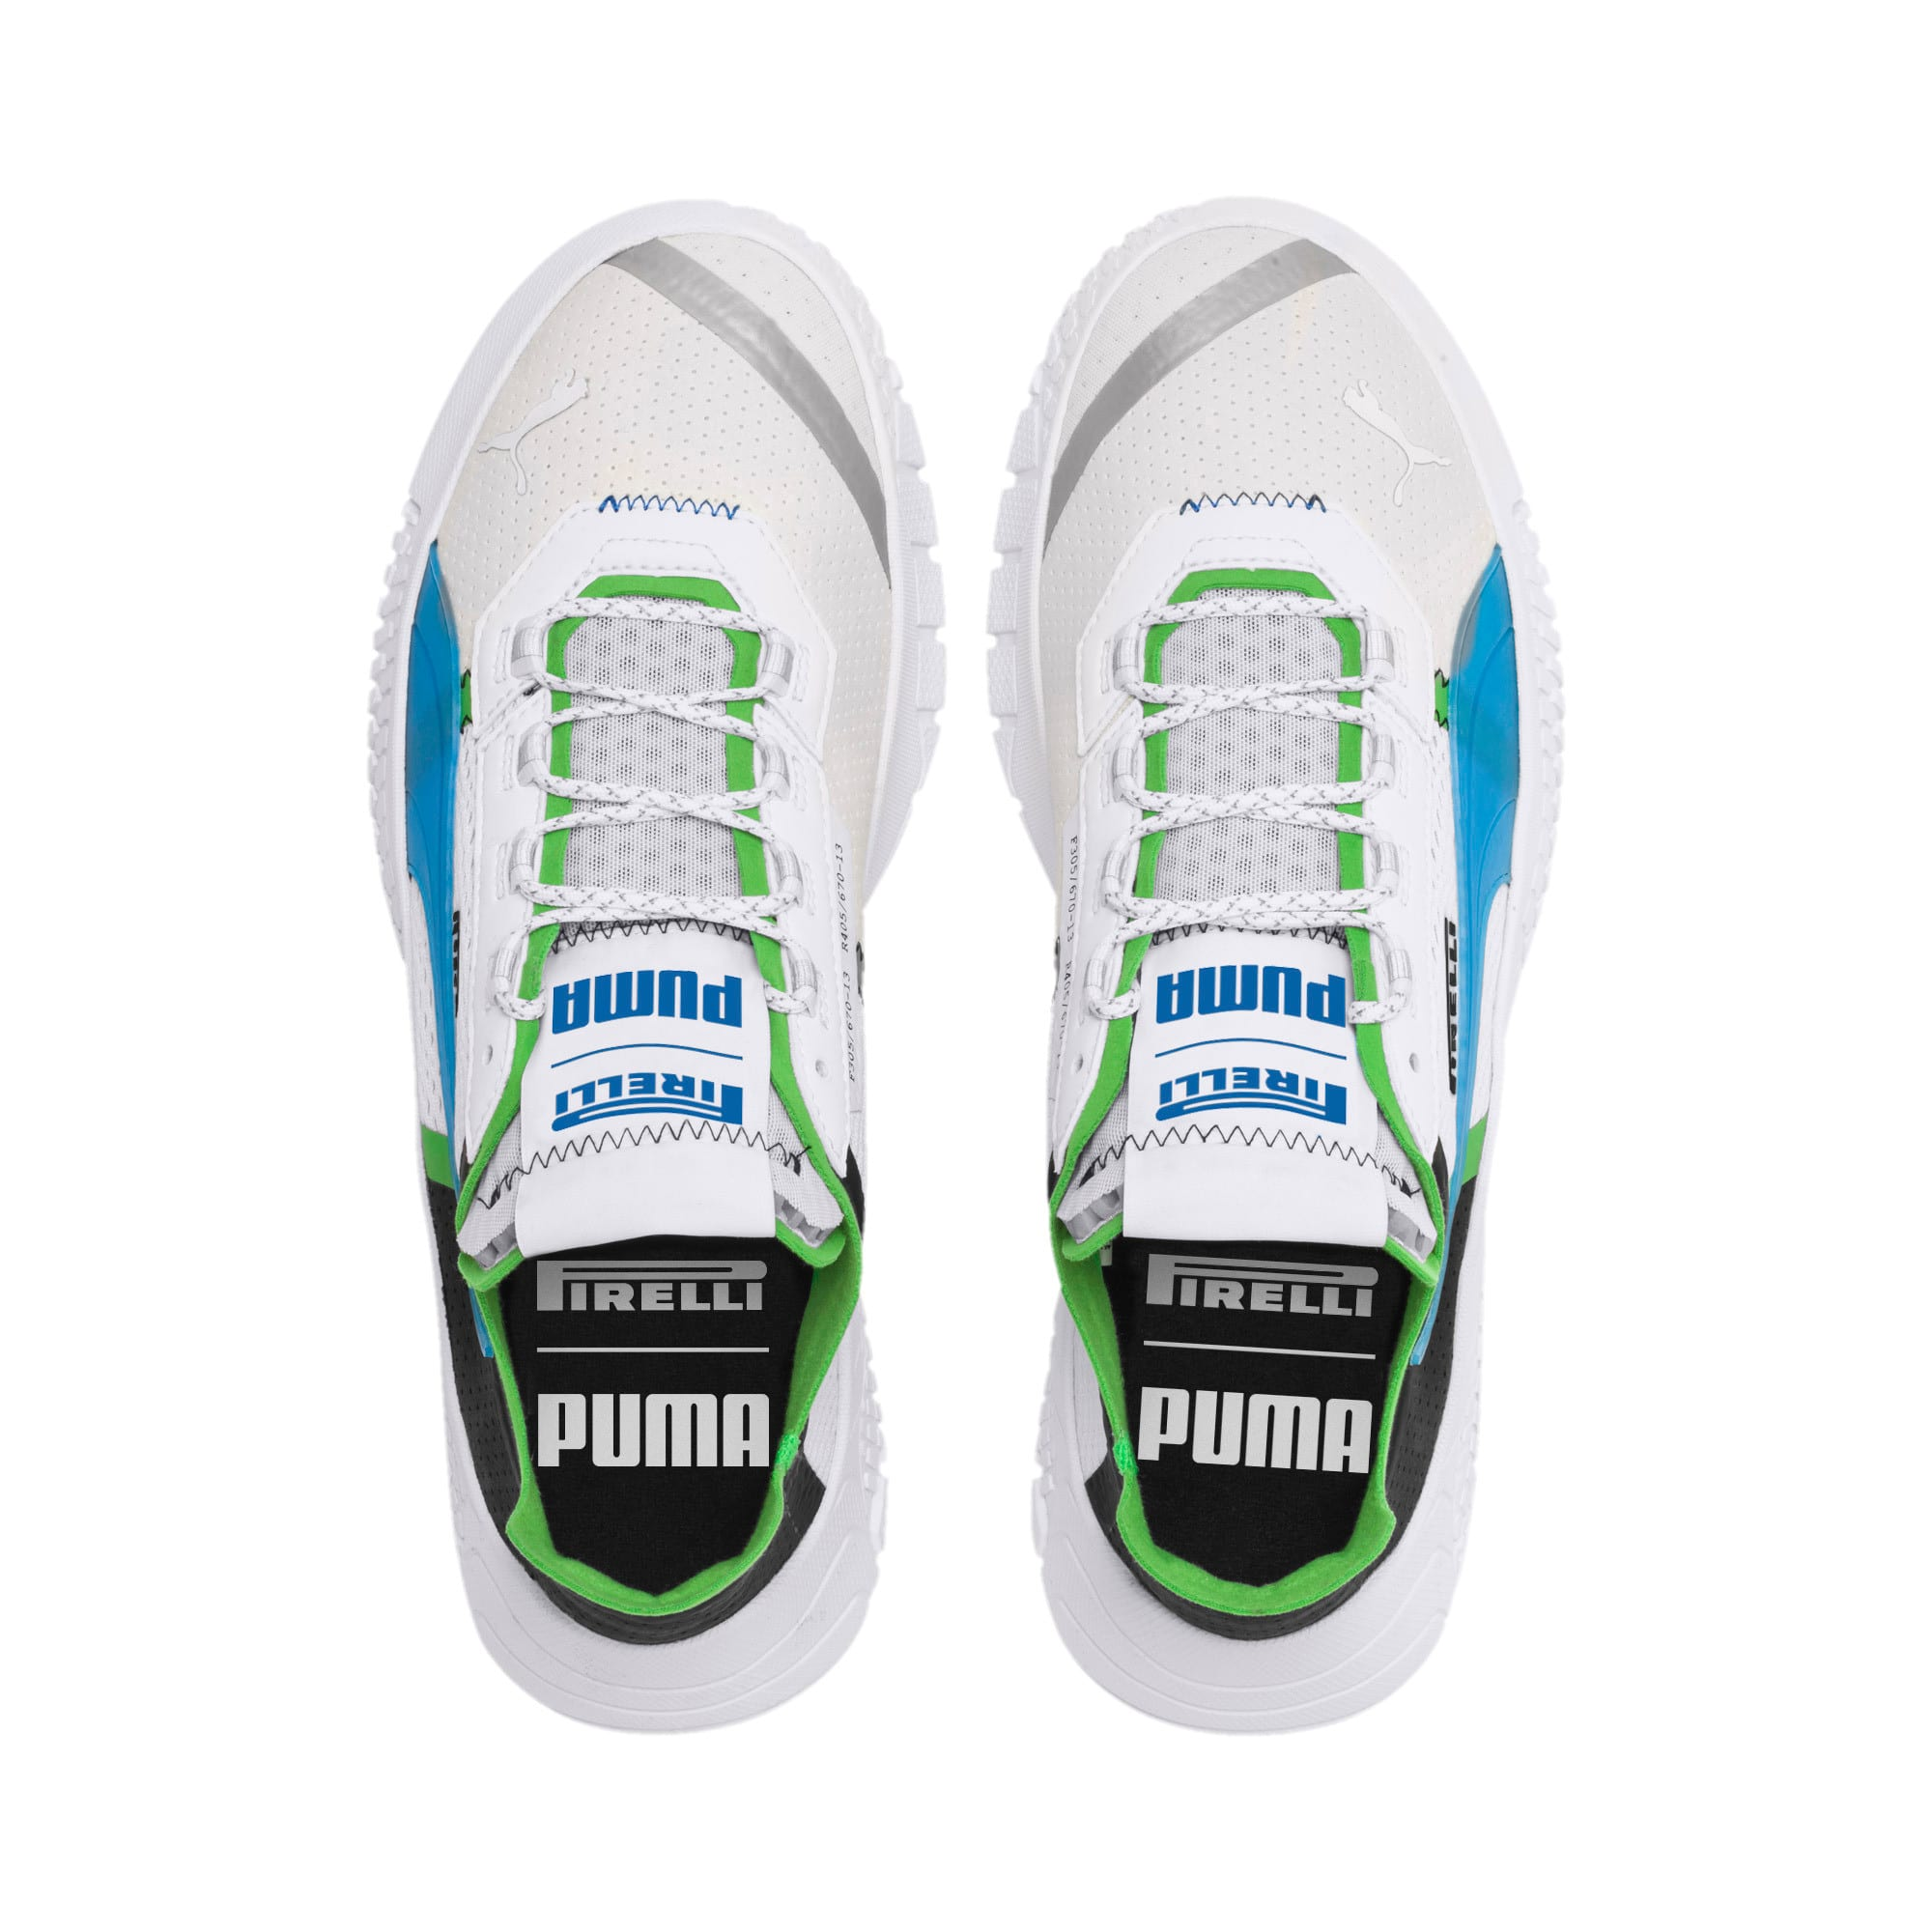 Thumbnail 7 of Replicat-X Pirelli Motorsport Shoes, White-Black-Classic Green, medium